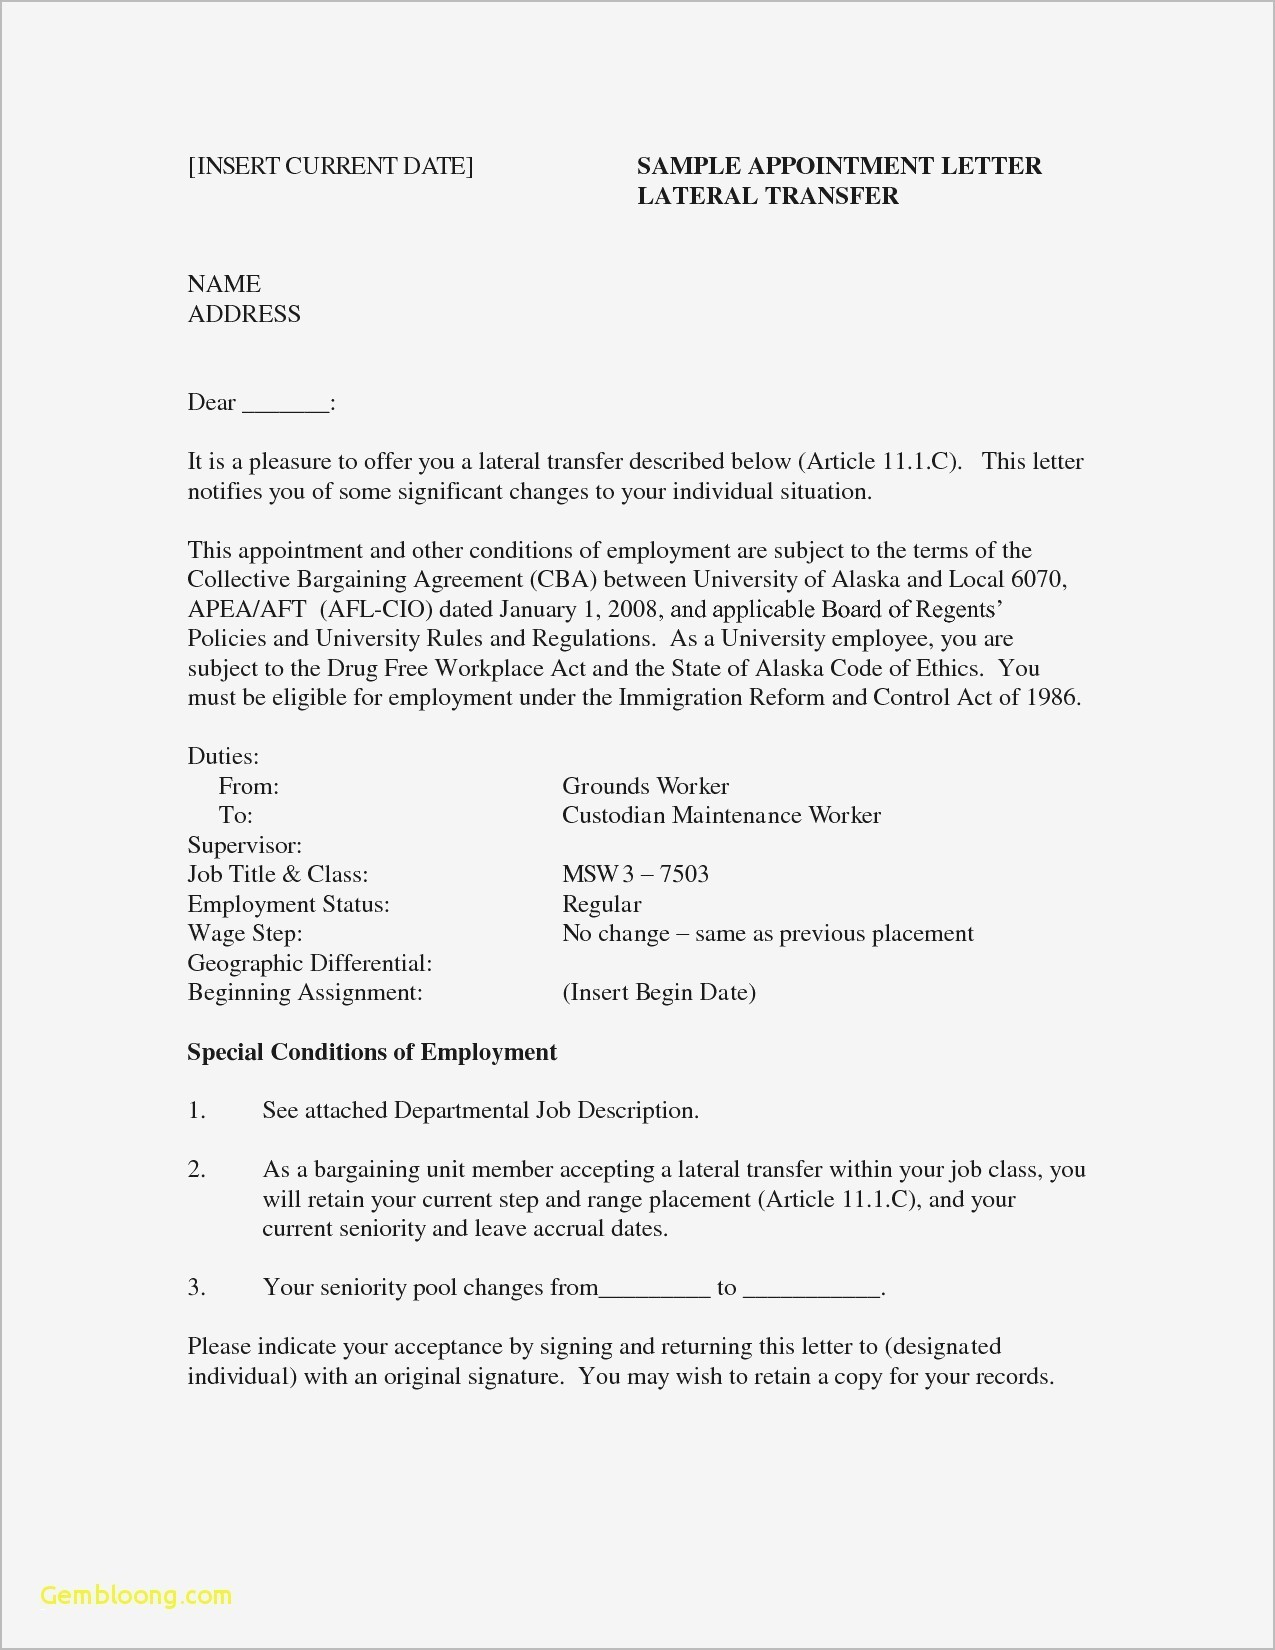 theatre resume template example-Theatre resume template inspirational best actor resume unique actor resumes 0d acting resume format 12-g